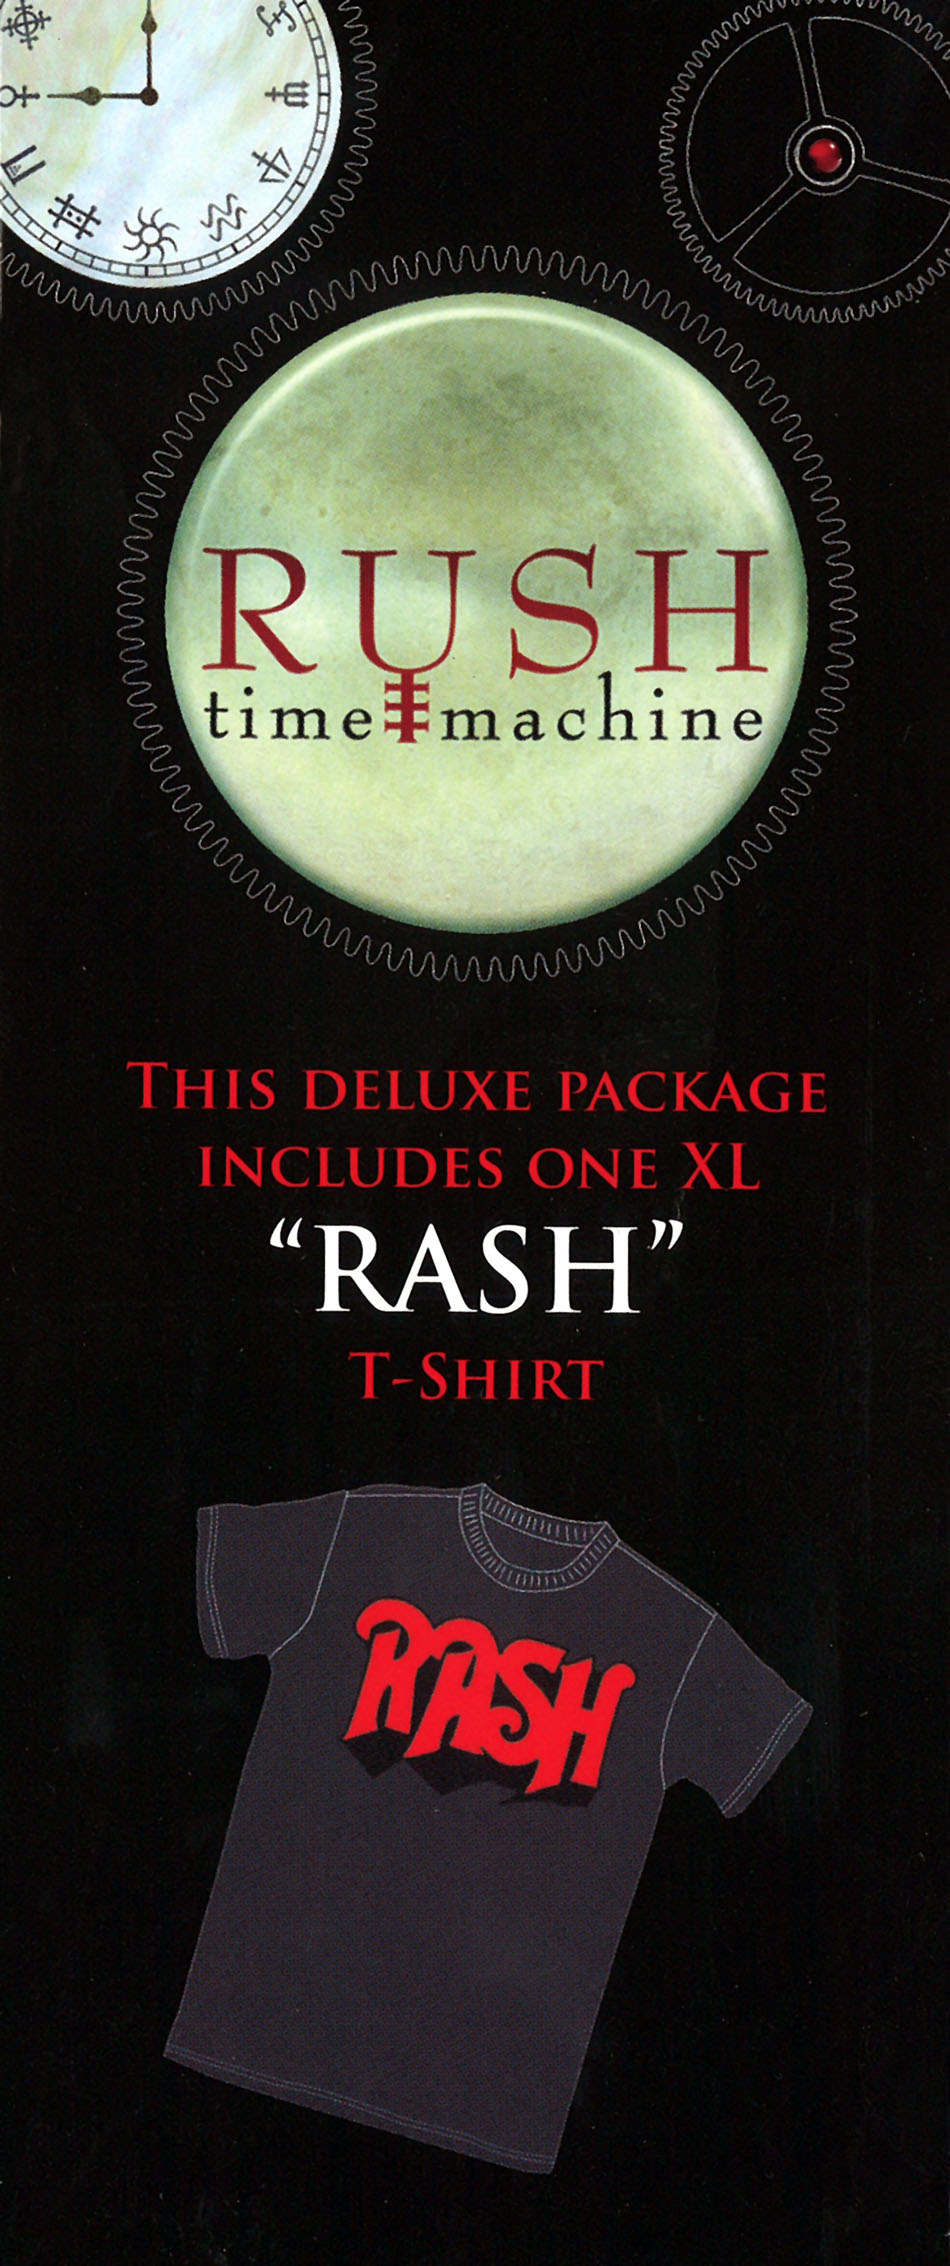 time machine 2011 live in cleveland